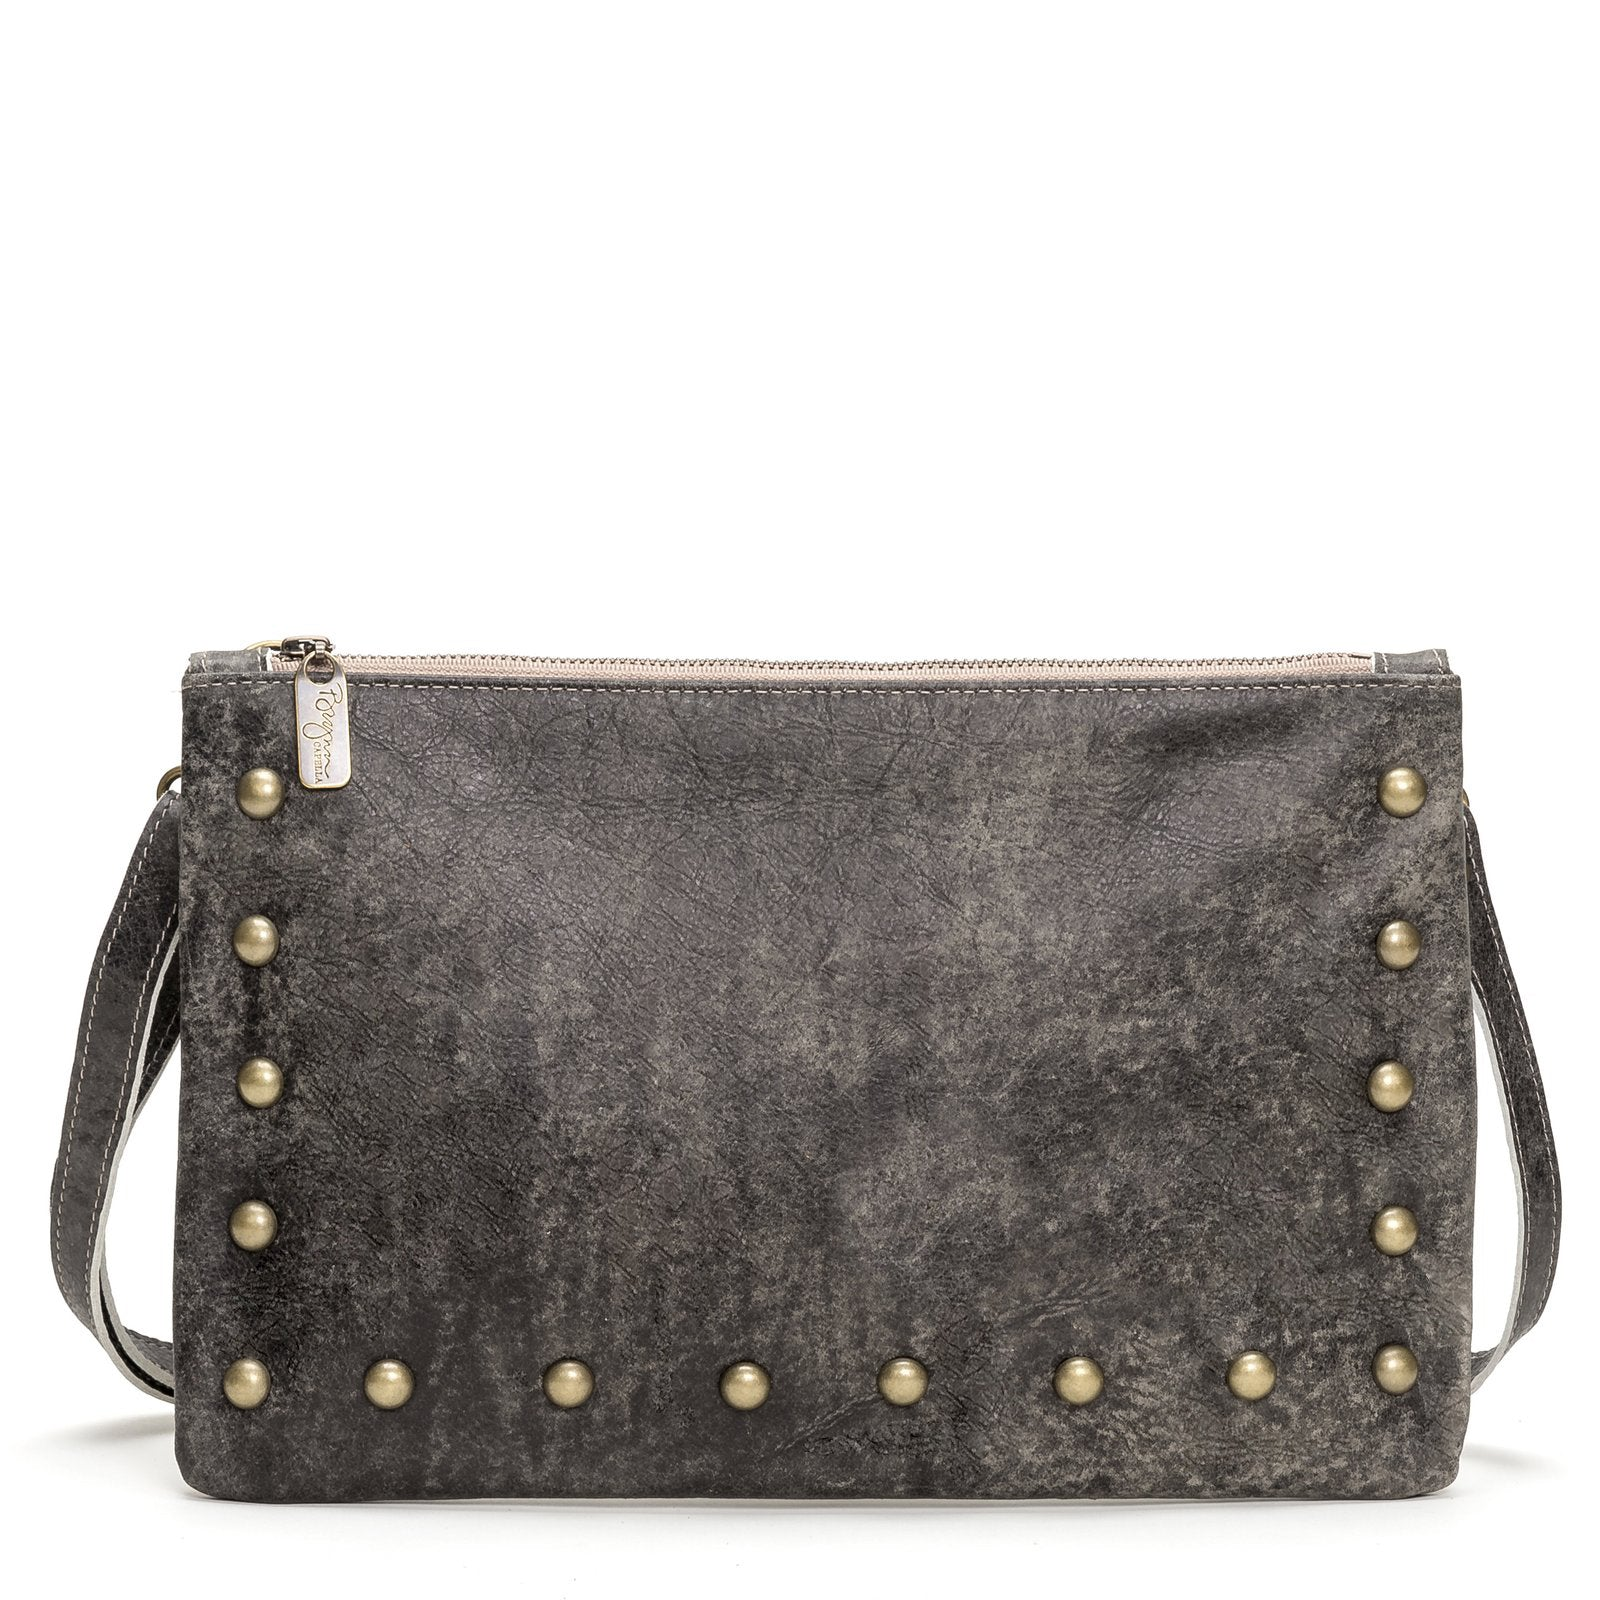 Nikki Clutch/Crossbody - Wicked - Brynn Capella, Small Crossbody